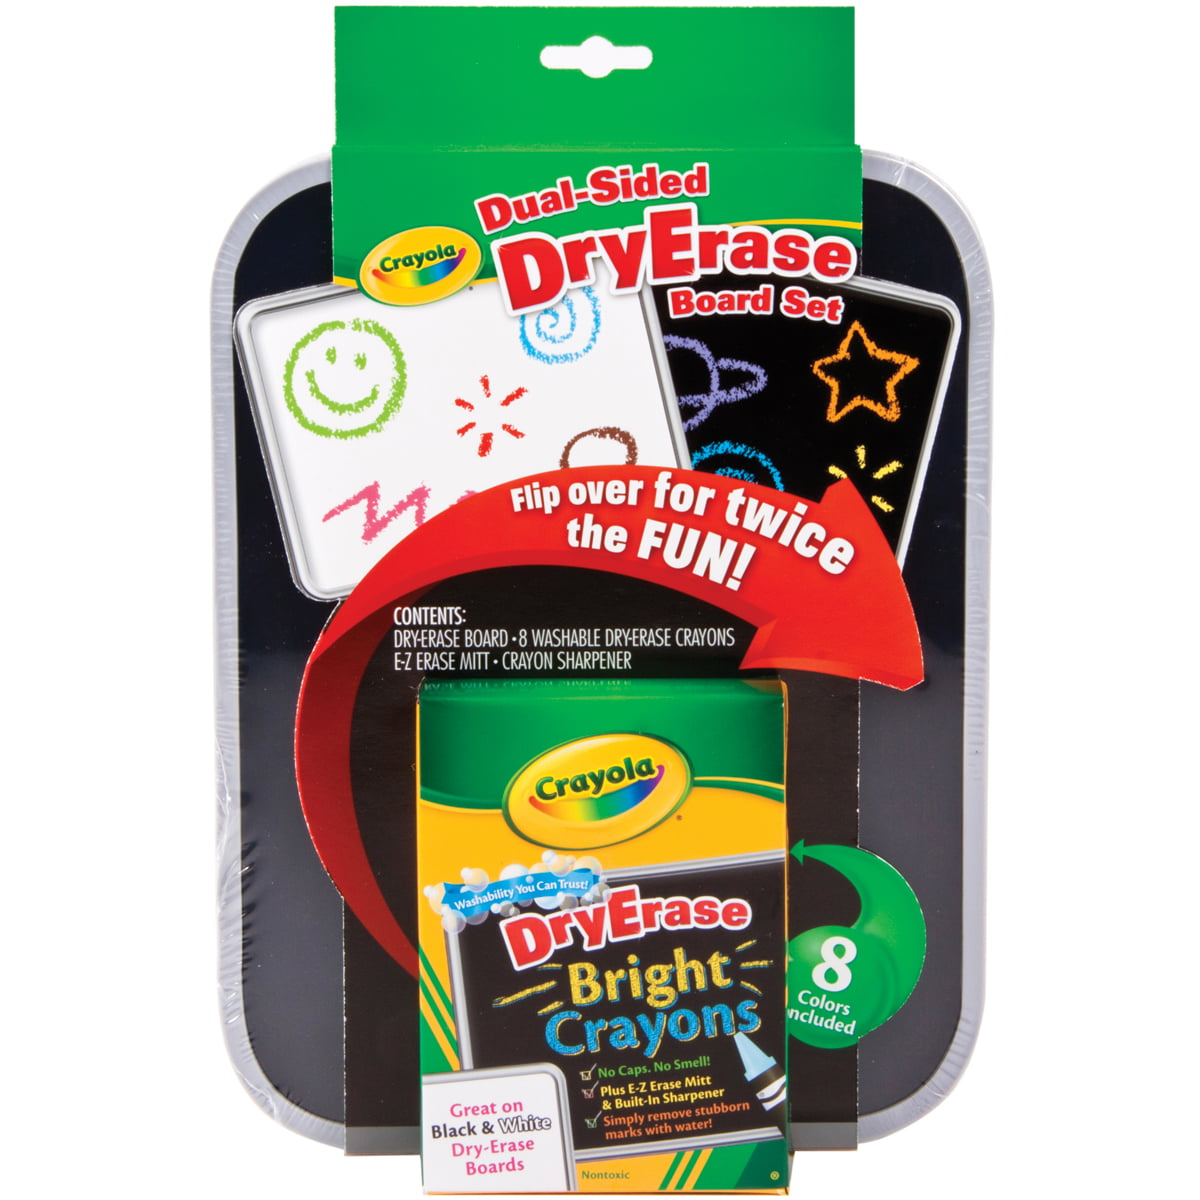 Crayola Dual-Sided Dry-Erase Board Set by Crayola